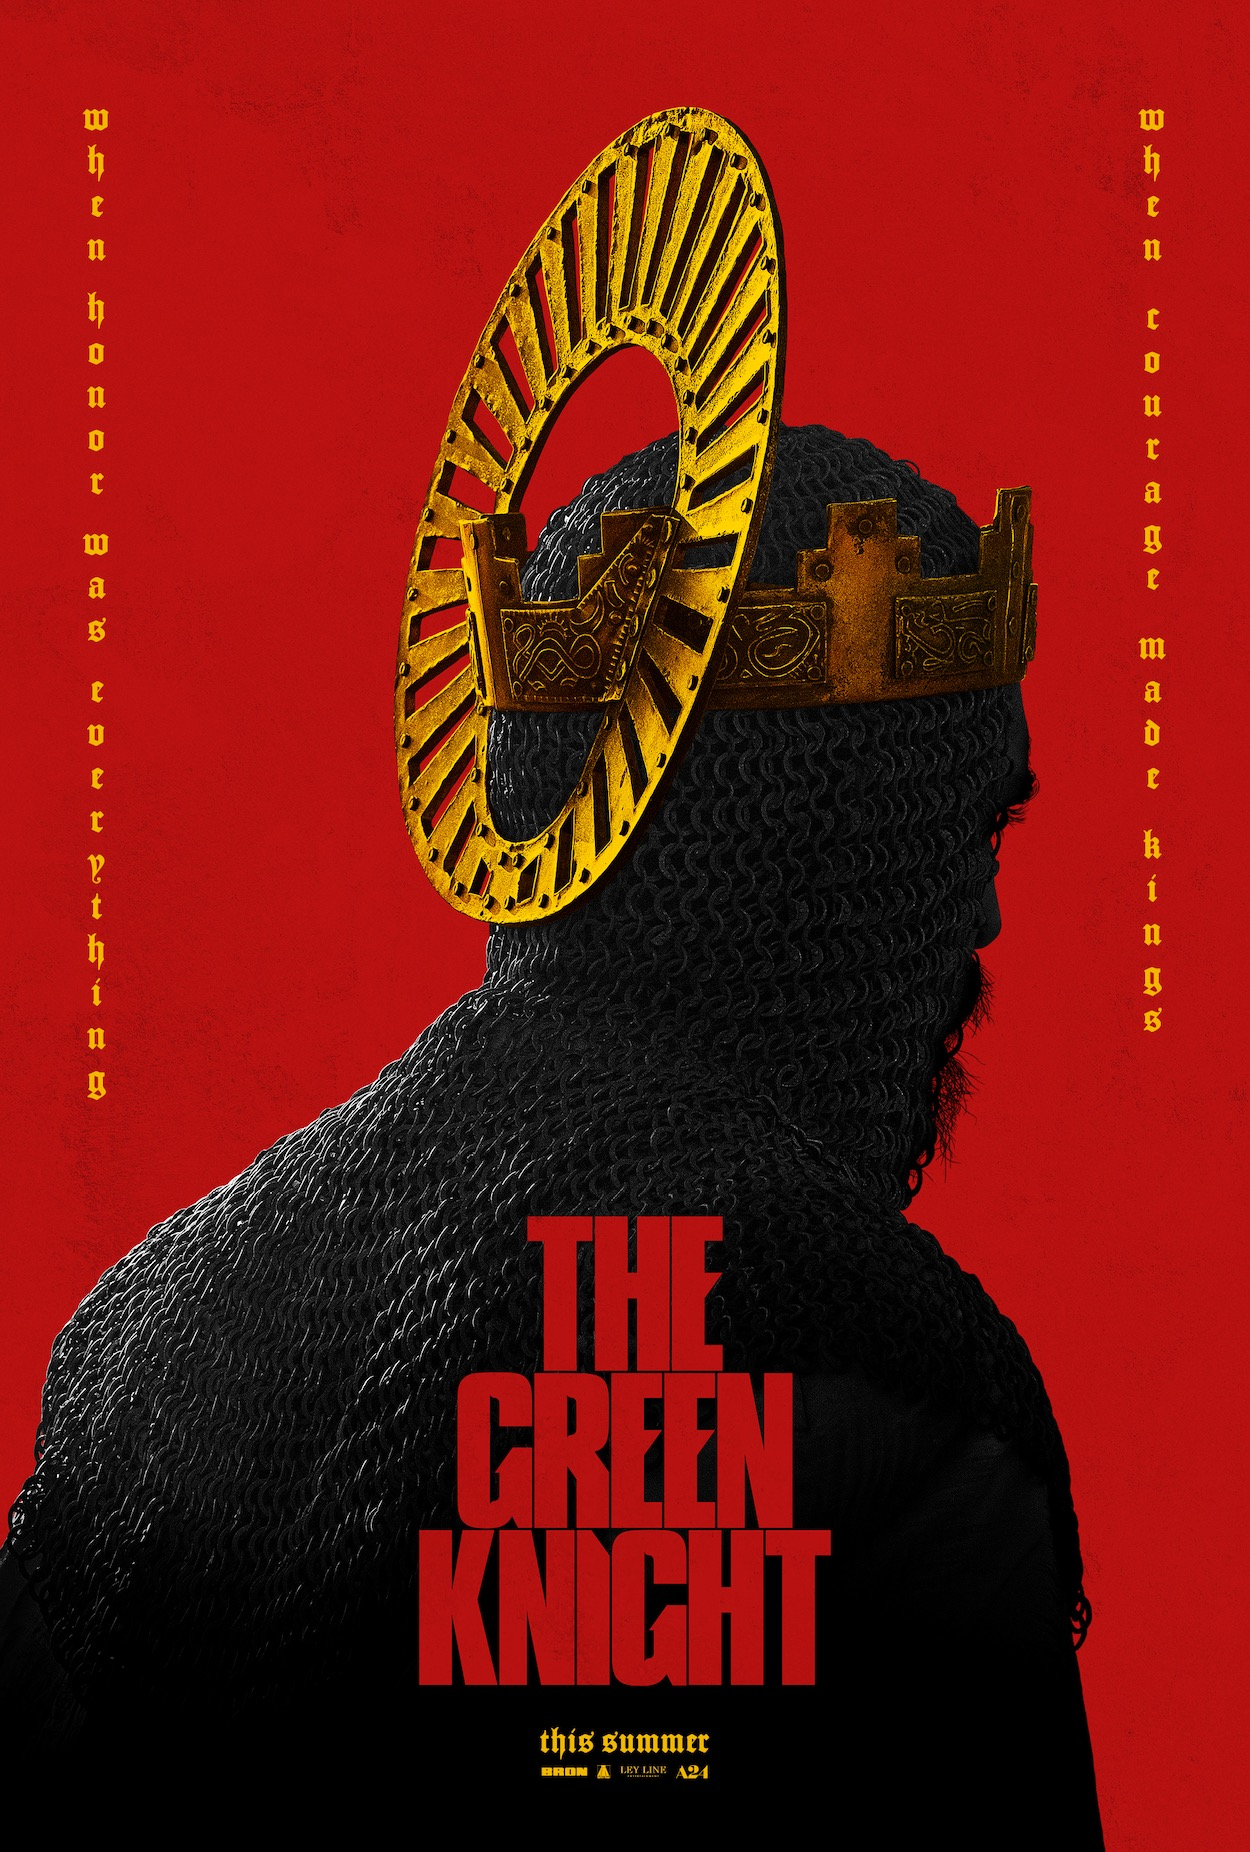 the green knight poster The Green Knight Trailer Shows Dev Patel as a Knight of the Round Table: Watch